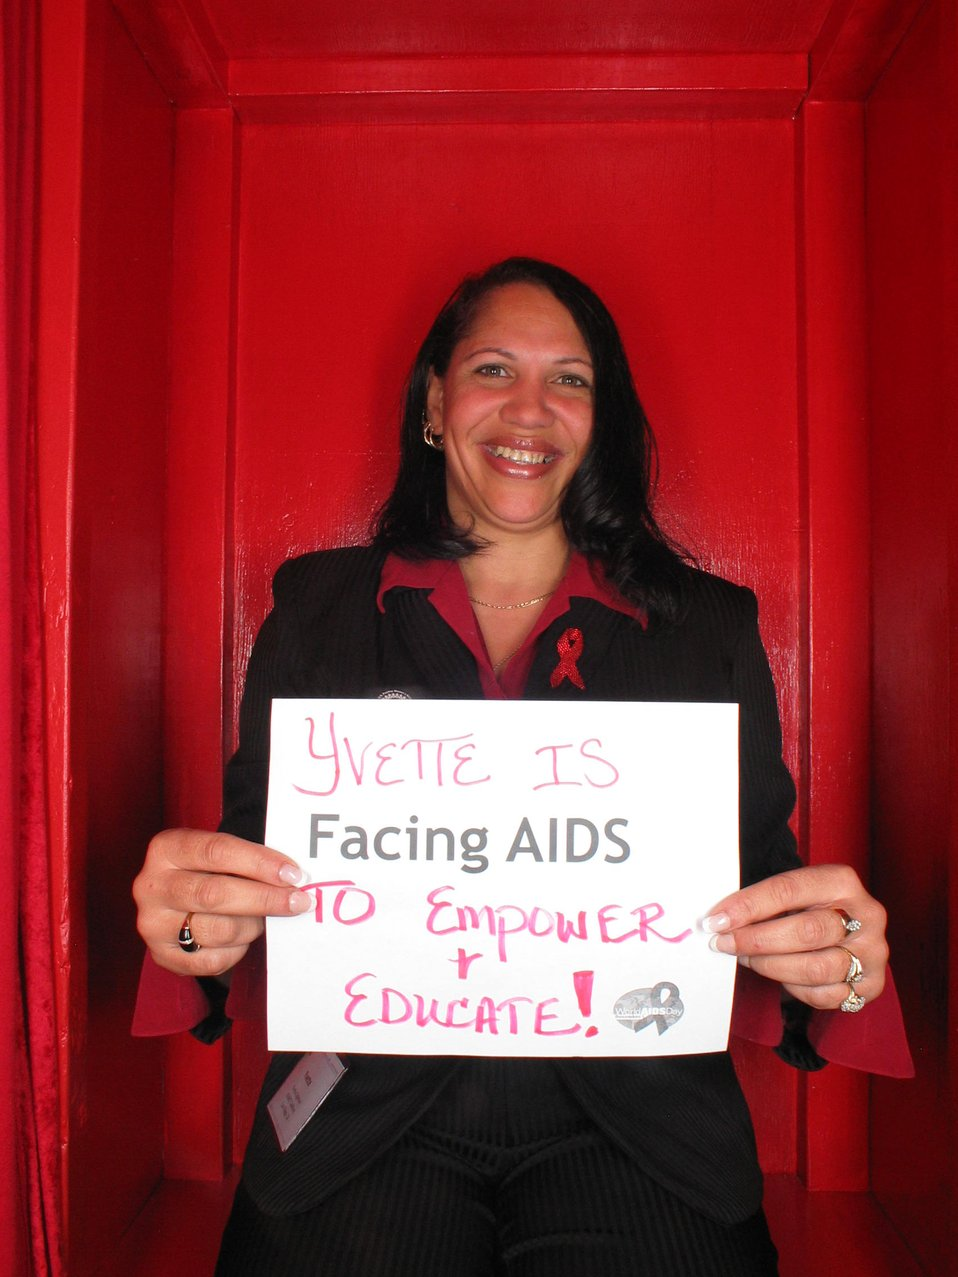 Facing AIDS to empower and educate!